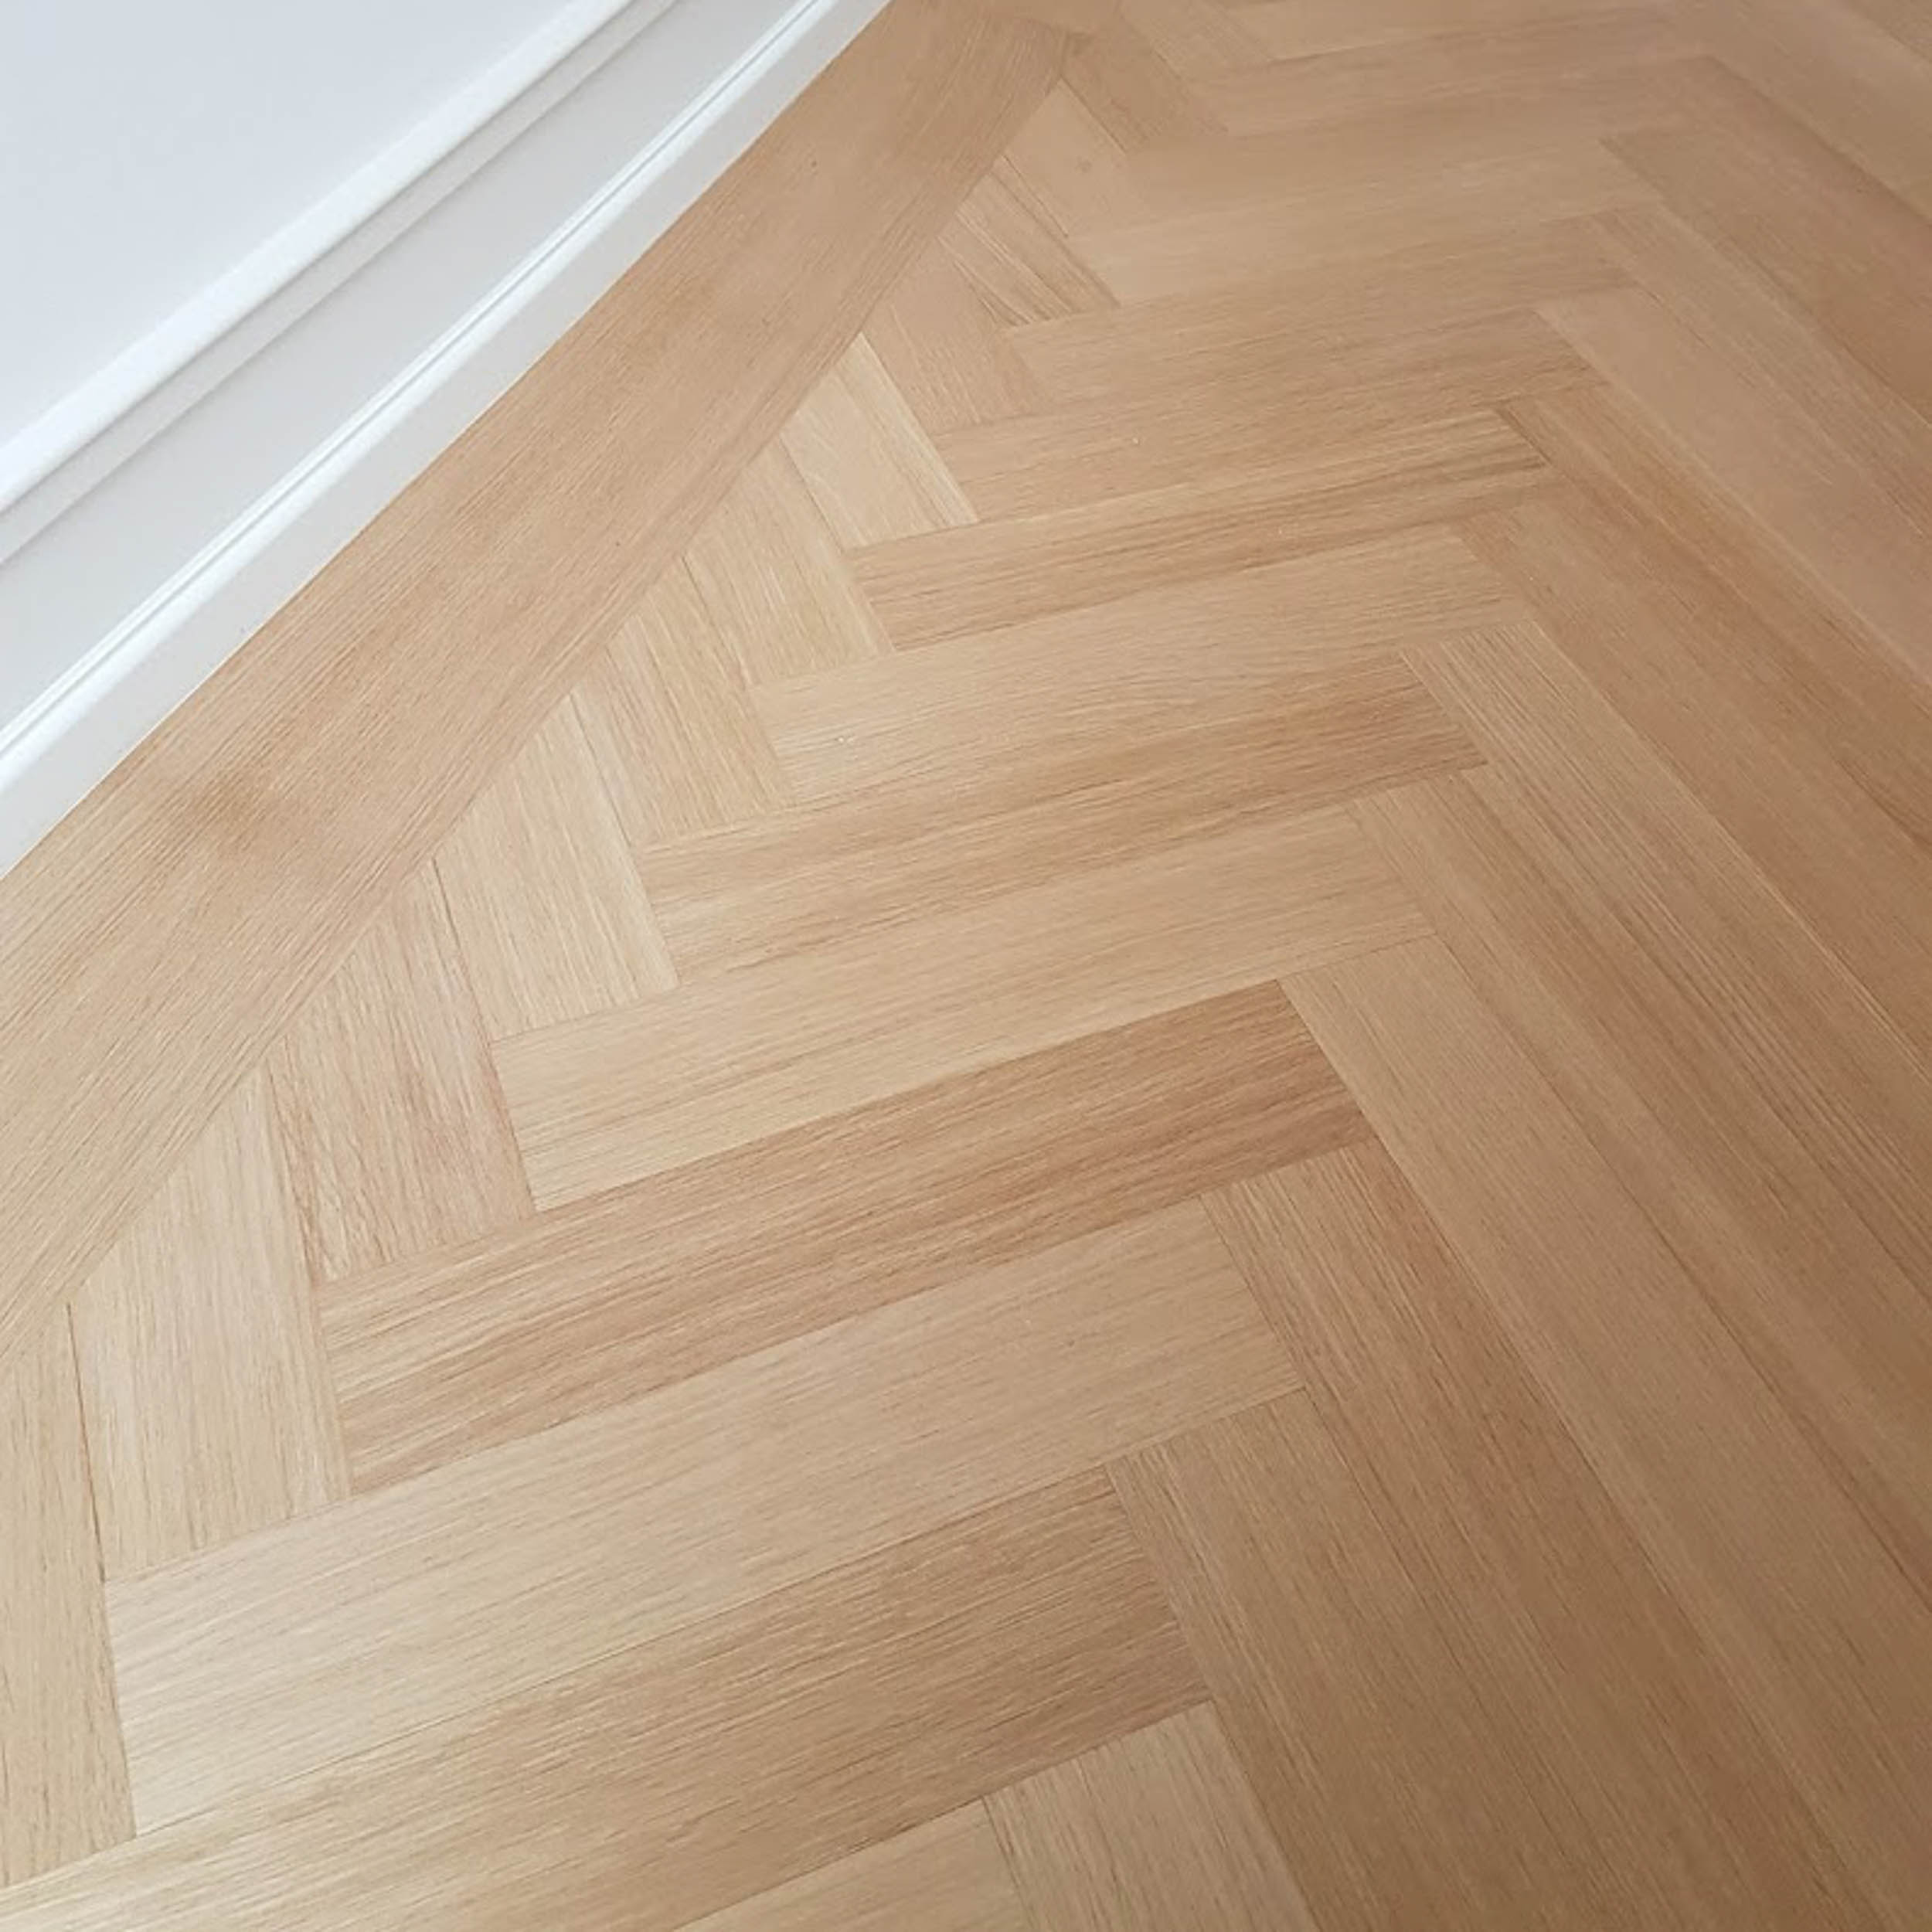 Rift Sawn Oak Flooring